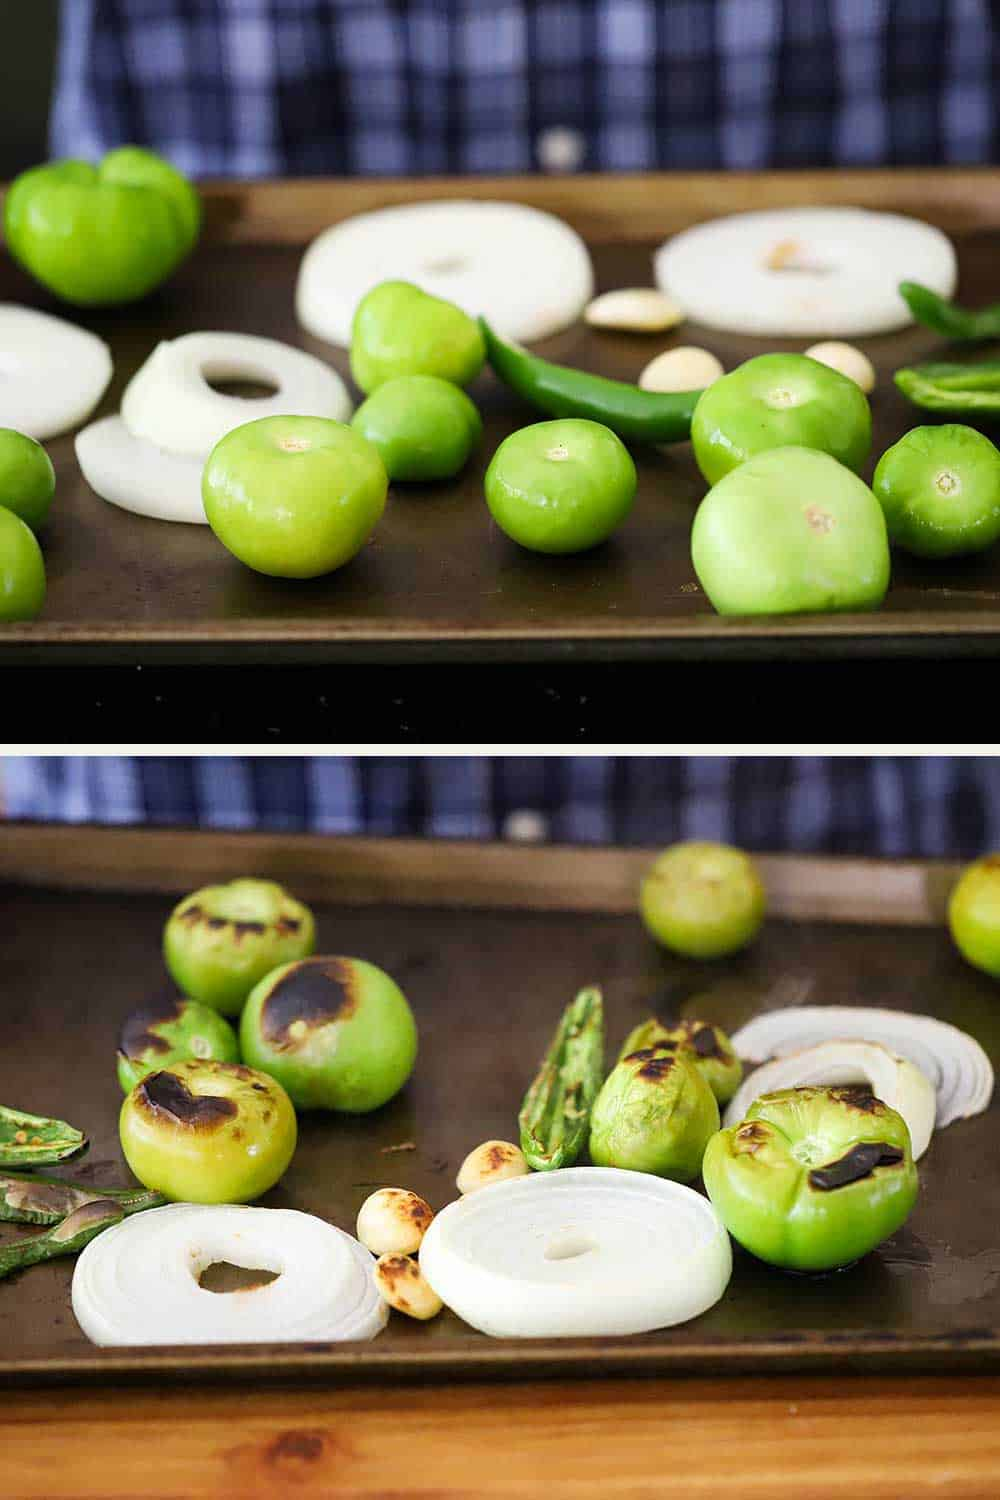 2 stacked photos, the top a baking sheet filled with tomatillos, serrano peppers, and sliced onions, and the bottom photo of the same vegetables after being roasted.